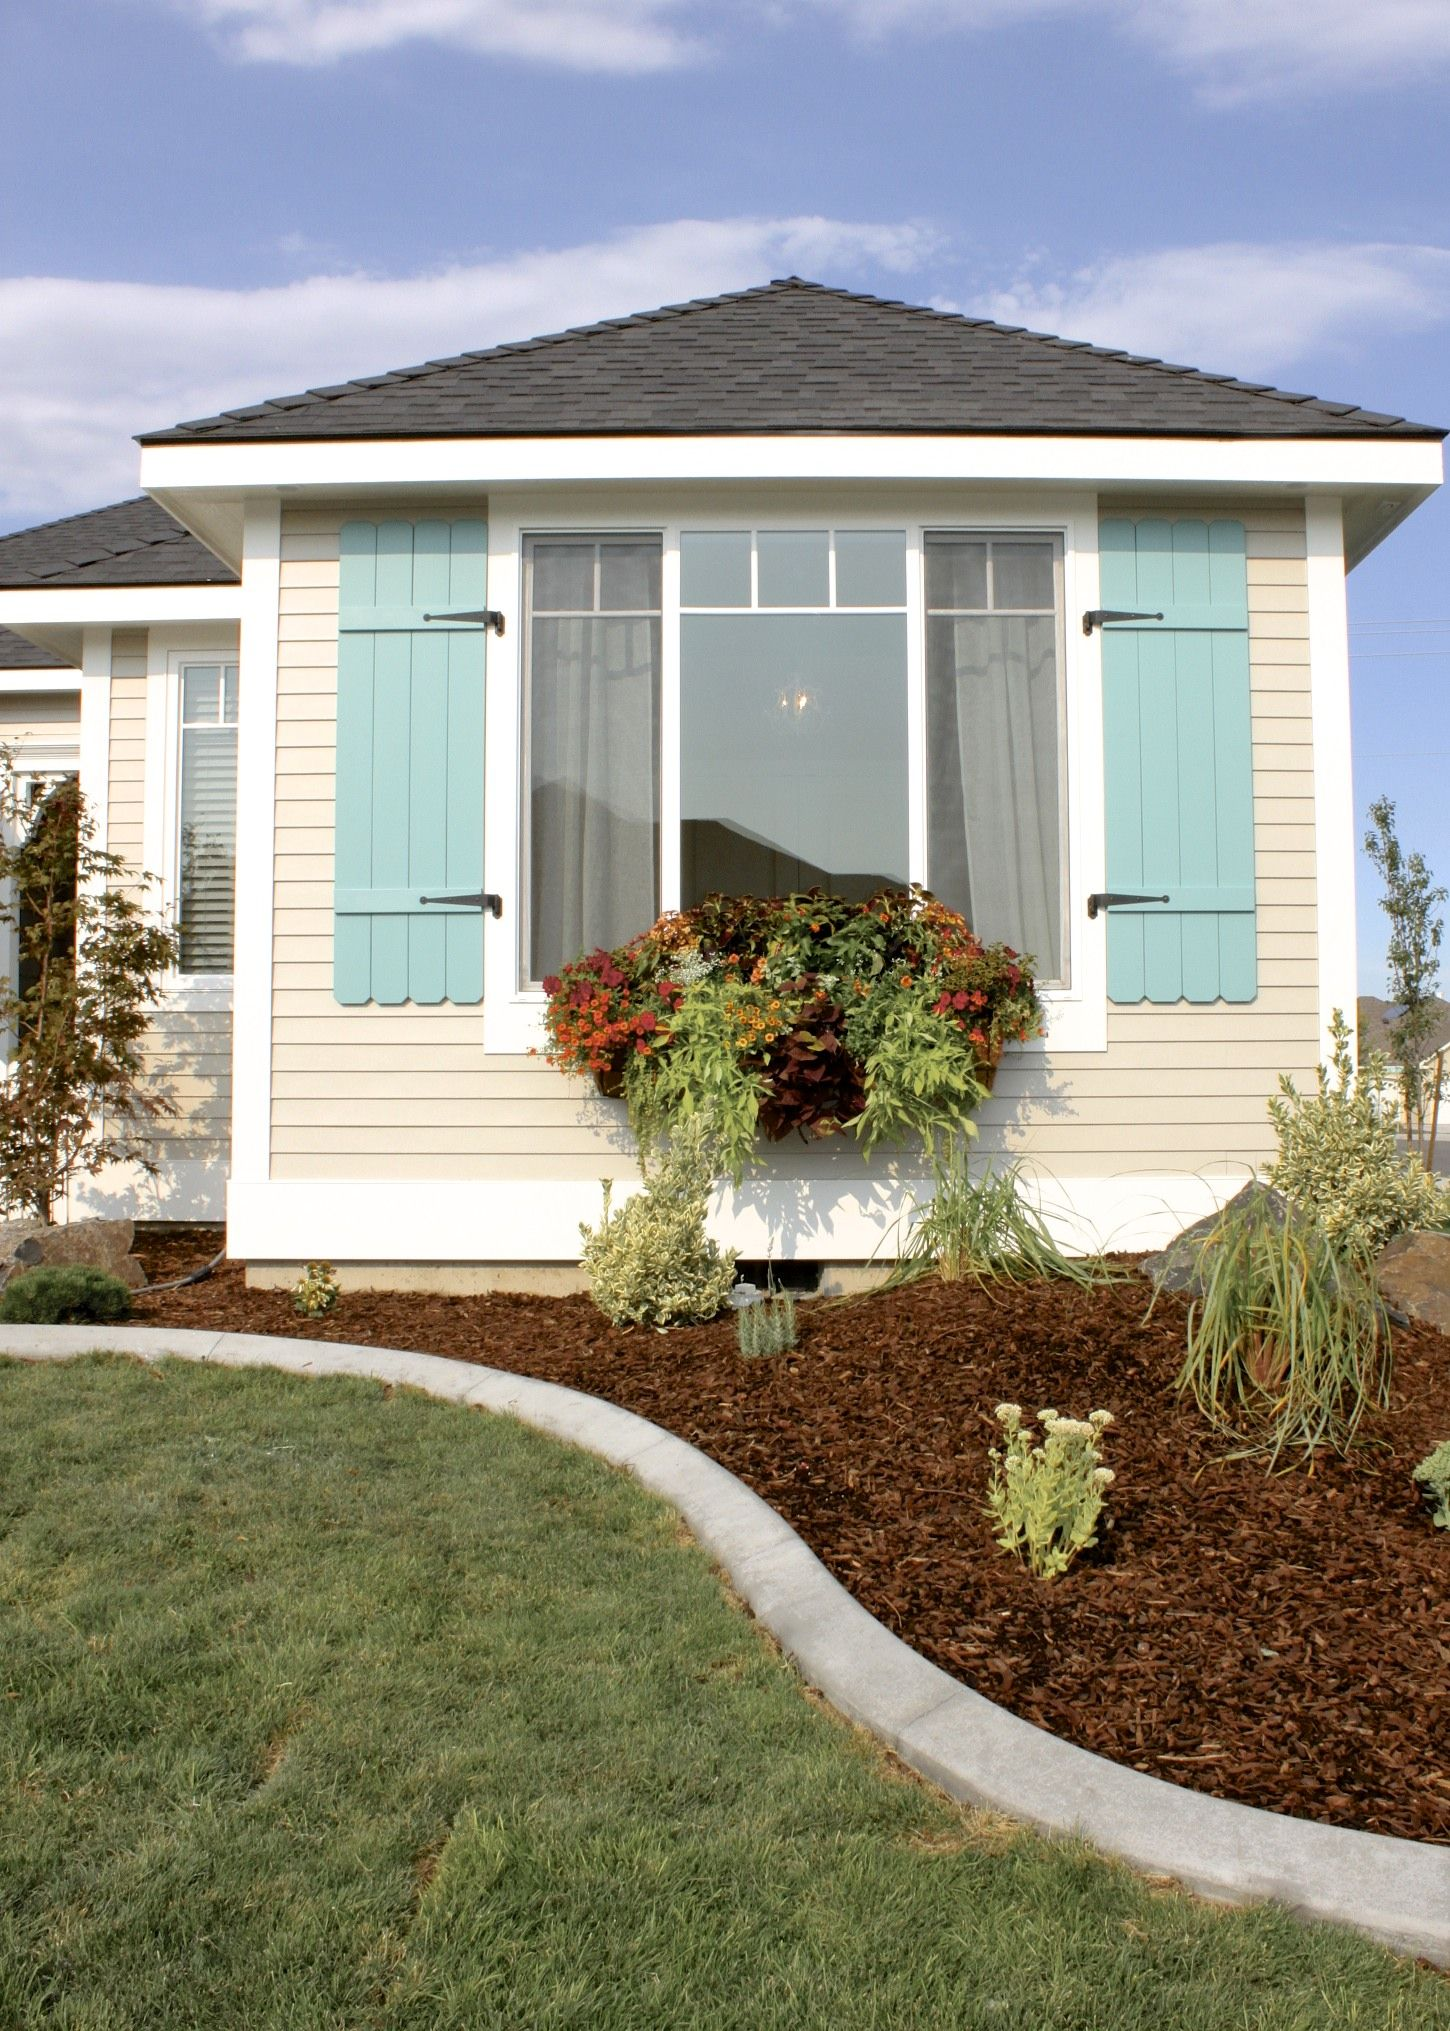 window boxes and teal shutters add a beach feel to this tri cities rh pinterest com